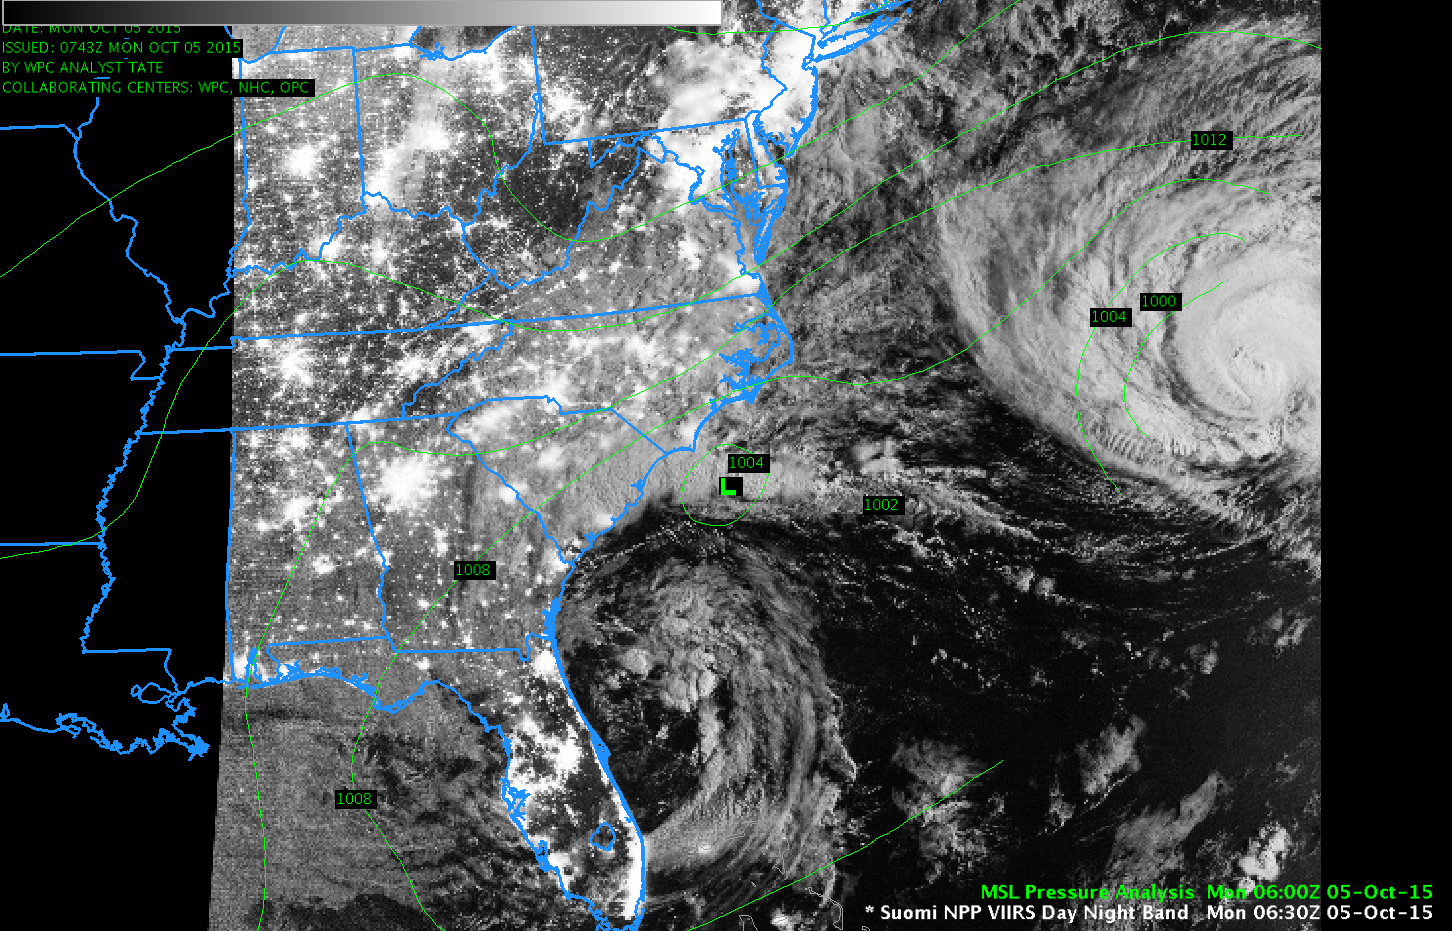 Suomi NPP VIIRS Day/Night Band Visible (0.70 µm) Imagery, 0630 UTC 5 October 2015 with surface analysis [click to enlarge]